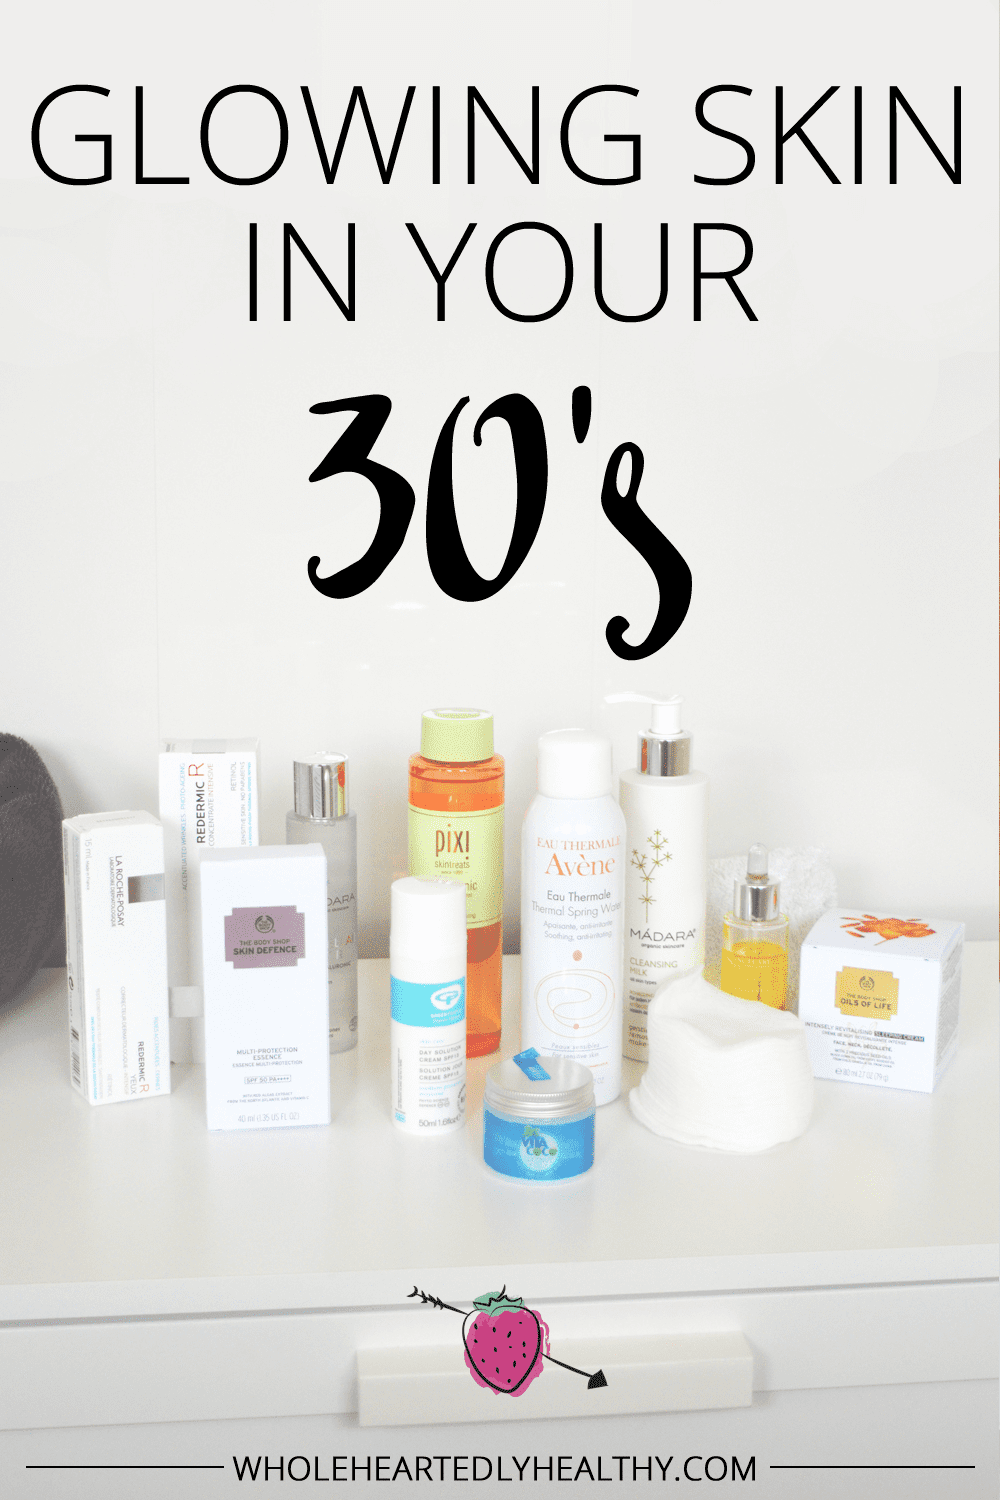 Glowing skin in your 30 s